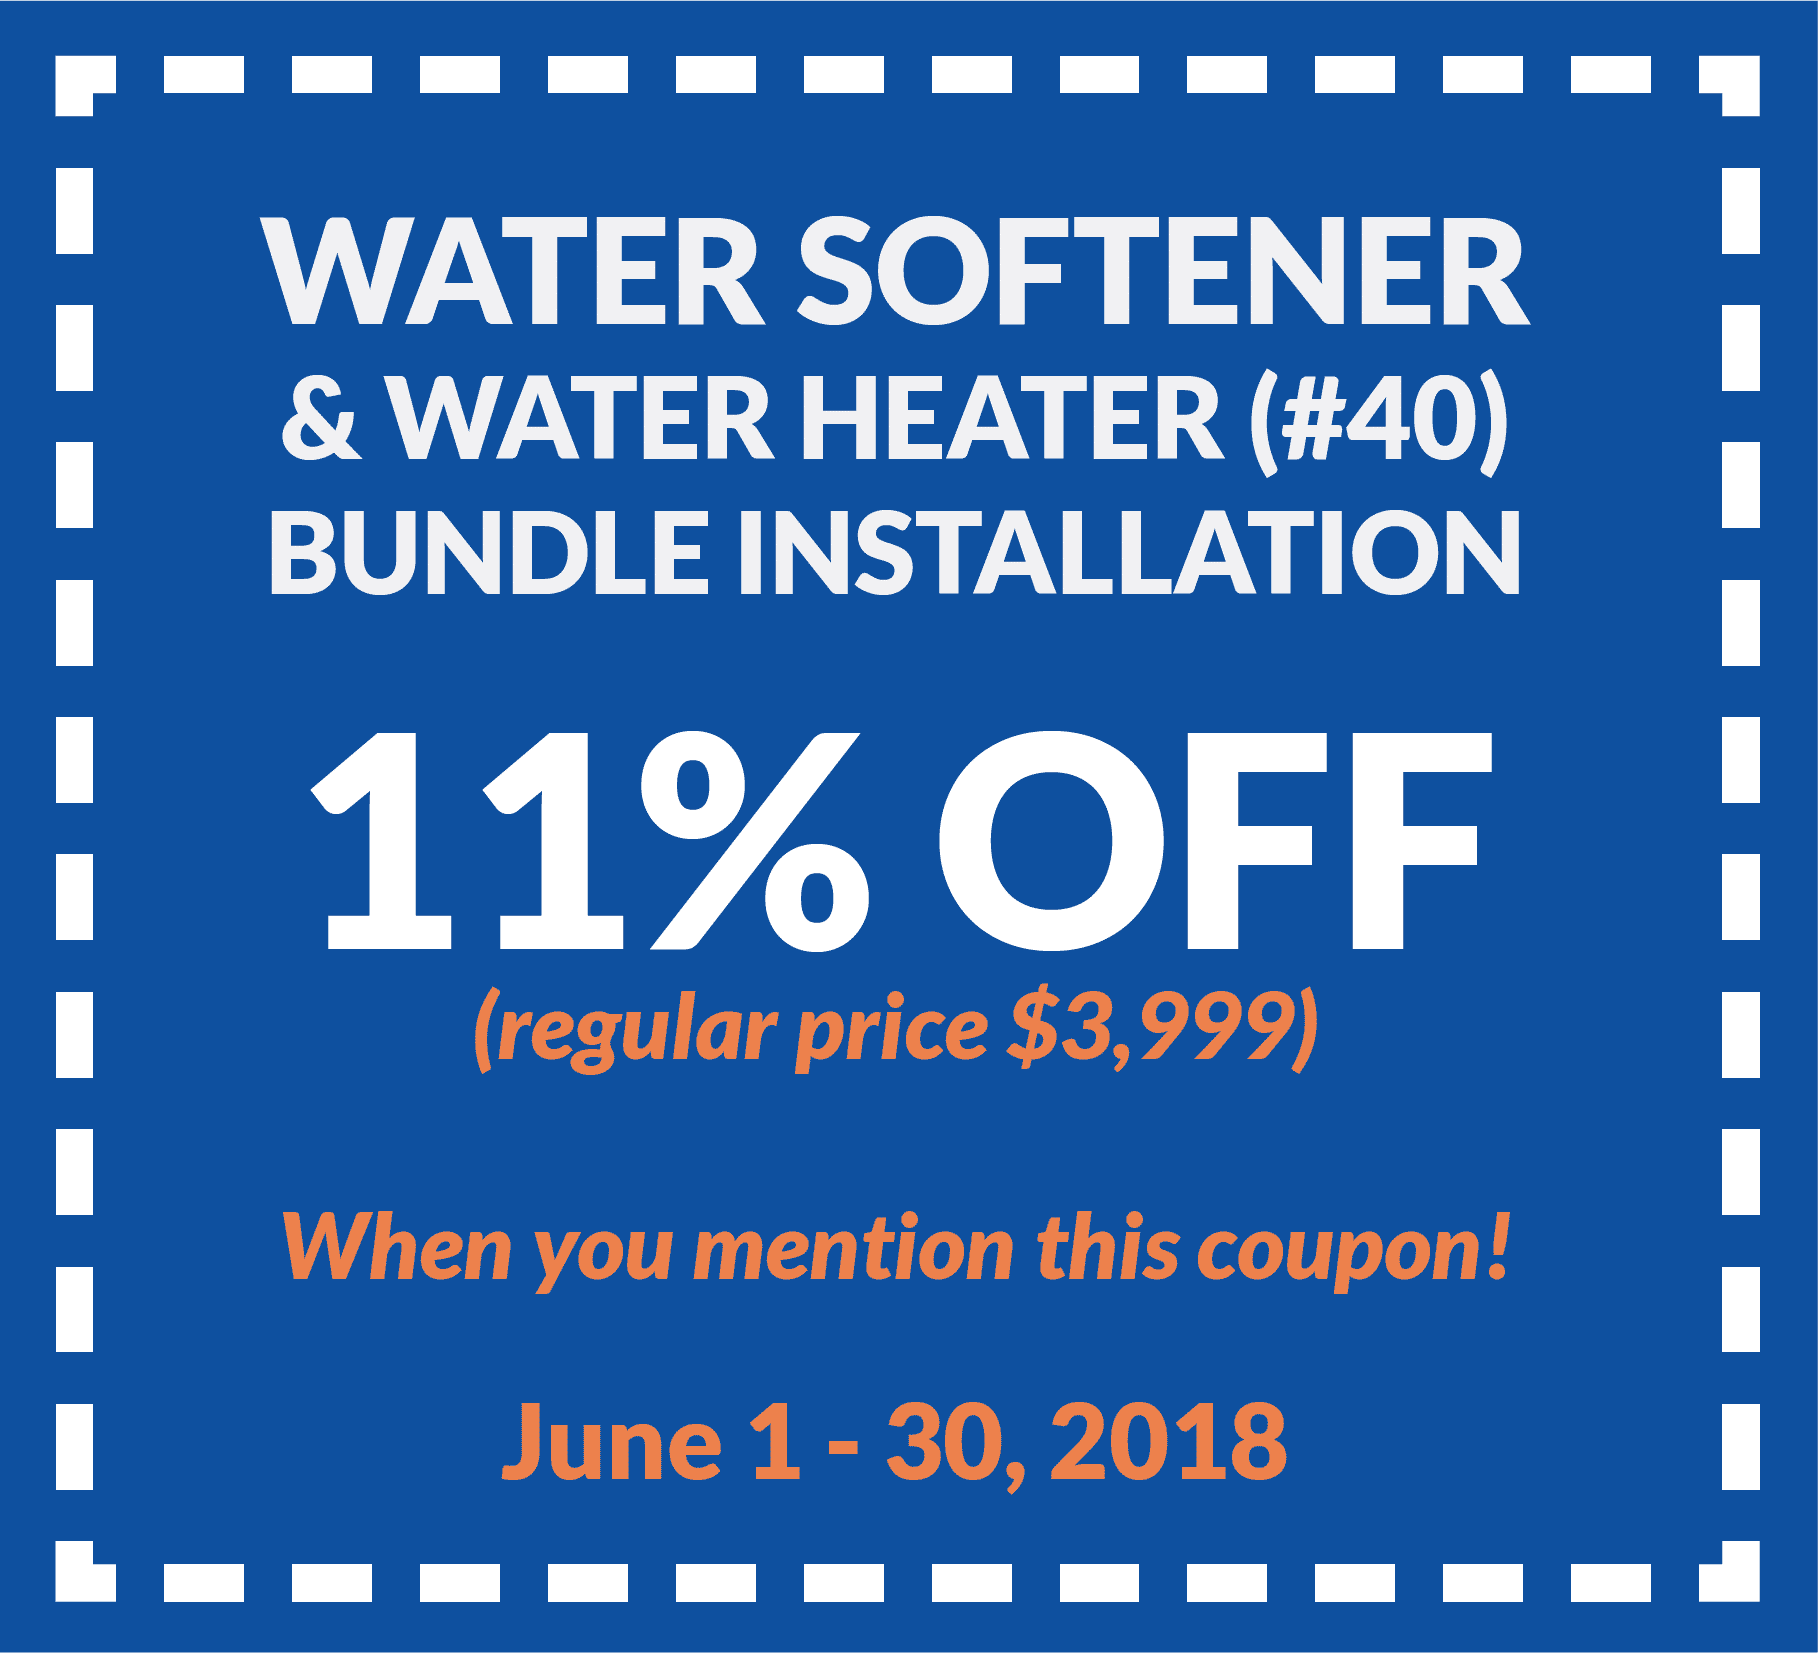 Coupon for water softener and water heater (#40) bundle installation for 11% off regular price ($3,999). Valid from June 1 to 30, 2018.